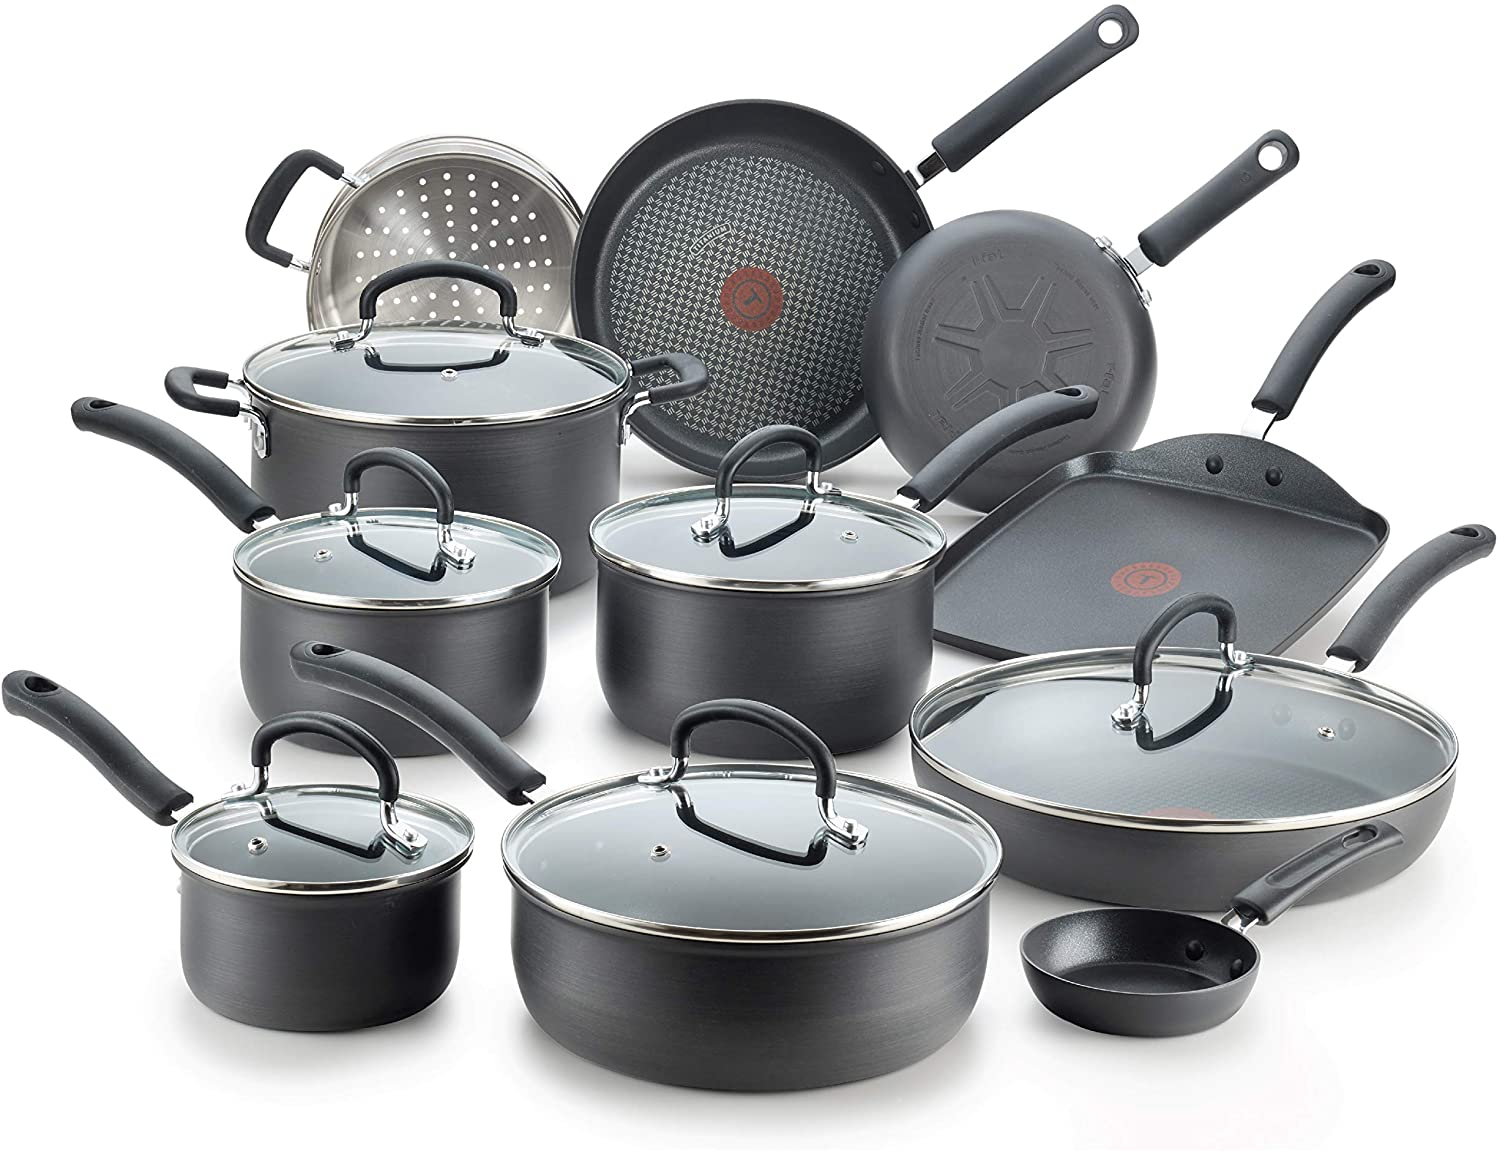 T-fal E765SH Ultimate Hard Anodized Nonstick Cookware, 17-Piece